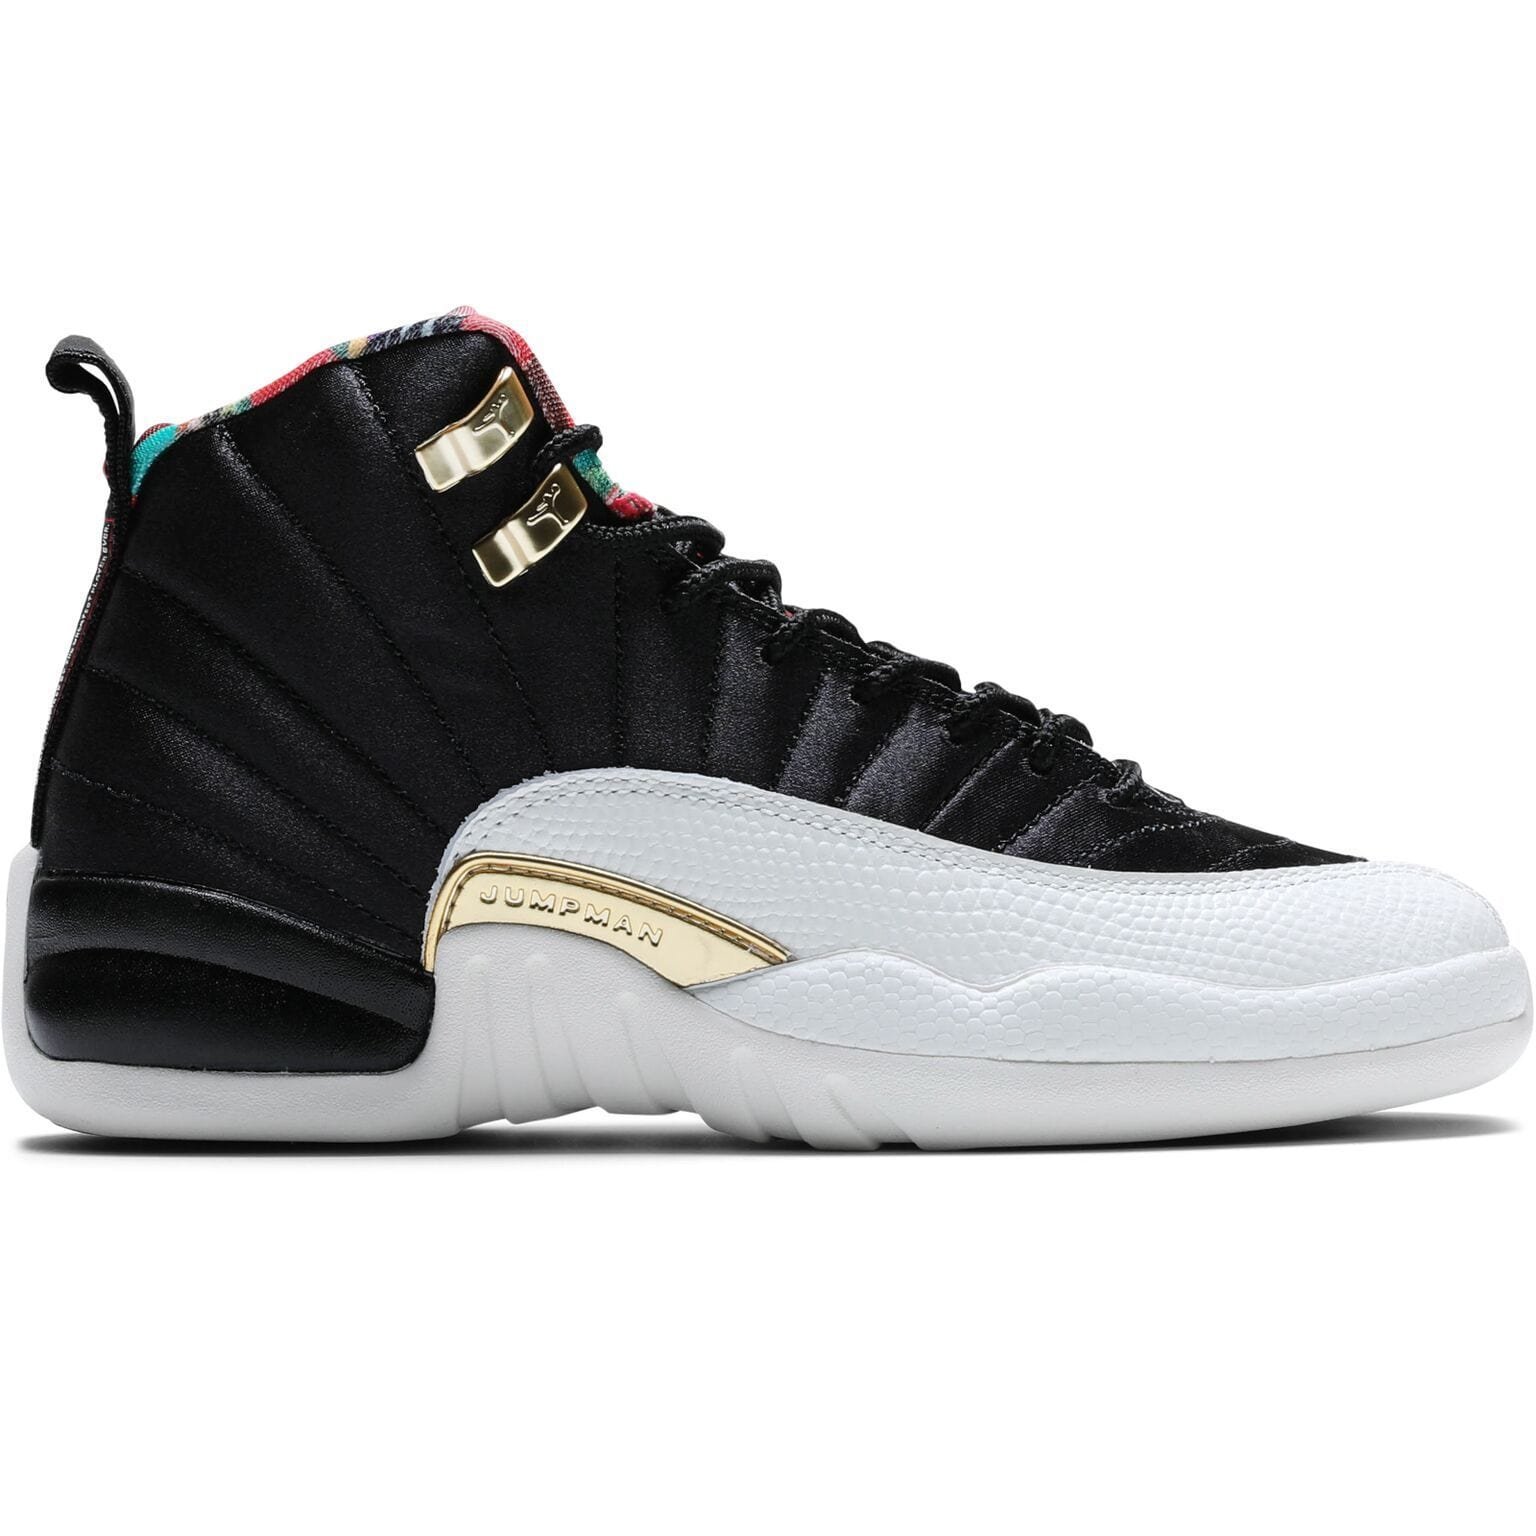 Air Jordan Shoes AIR JORDAN 12 RETRO CNY (Grade School)